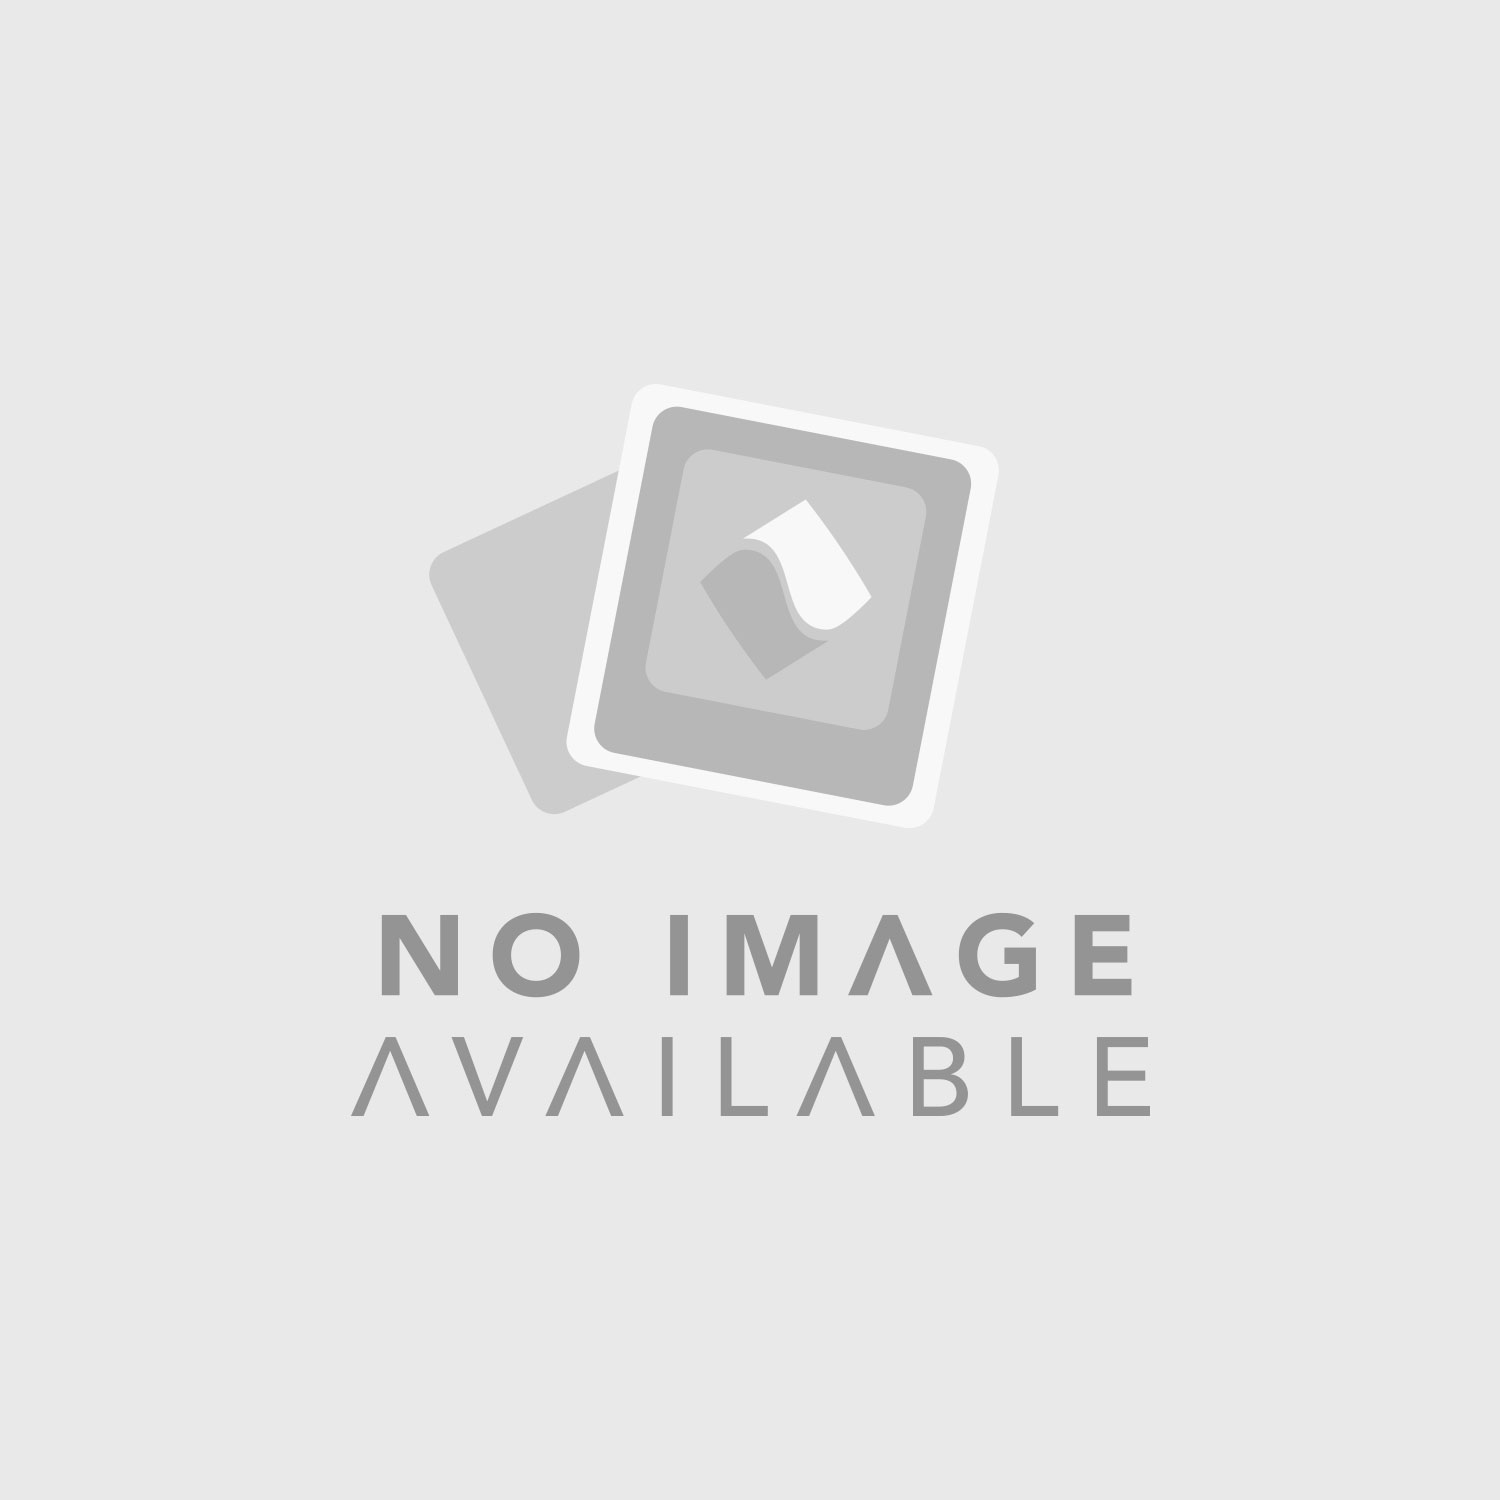 Rode RodeCaster Pro Ultimate 2 Guest Podcasting Bundle with PodMics (On-Stage Boom Arms)